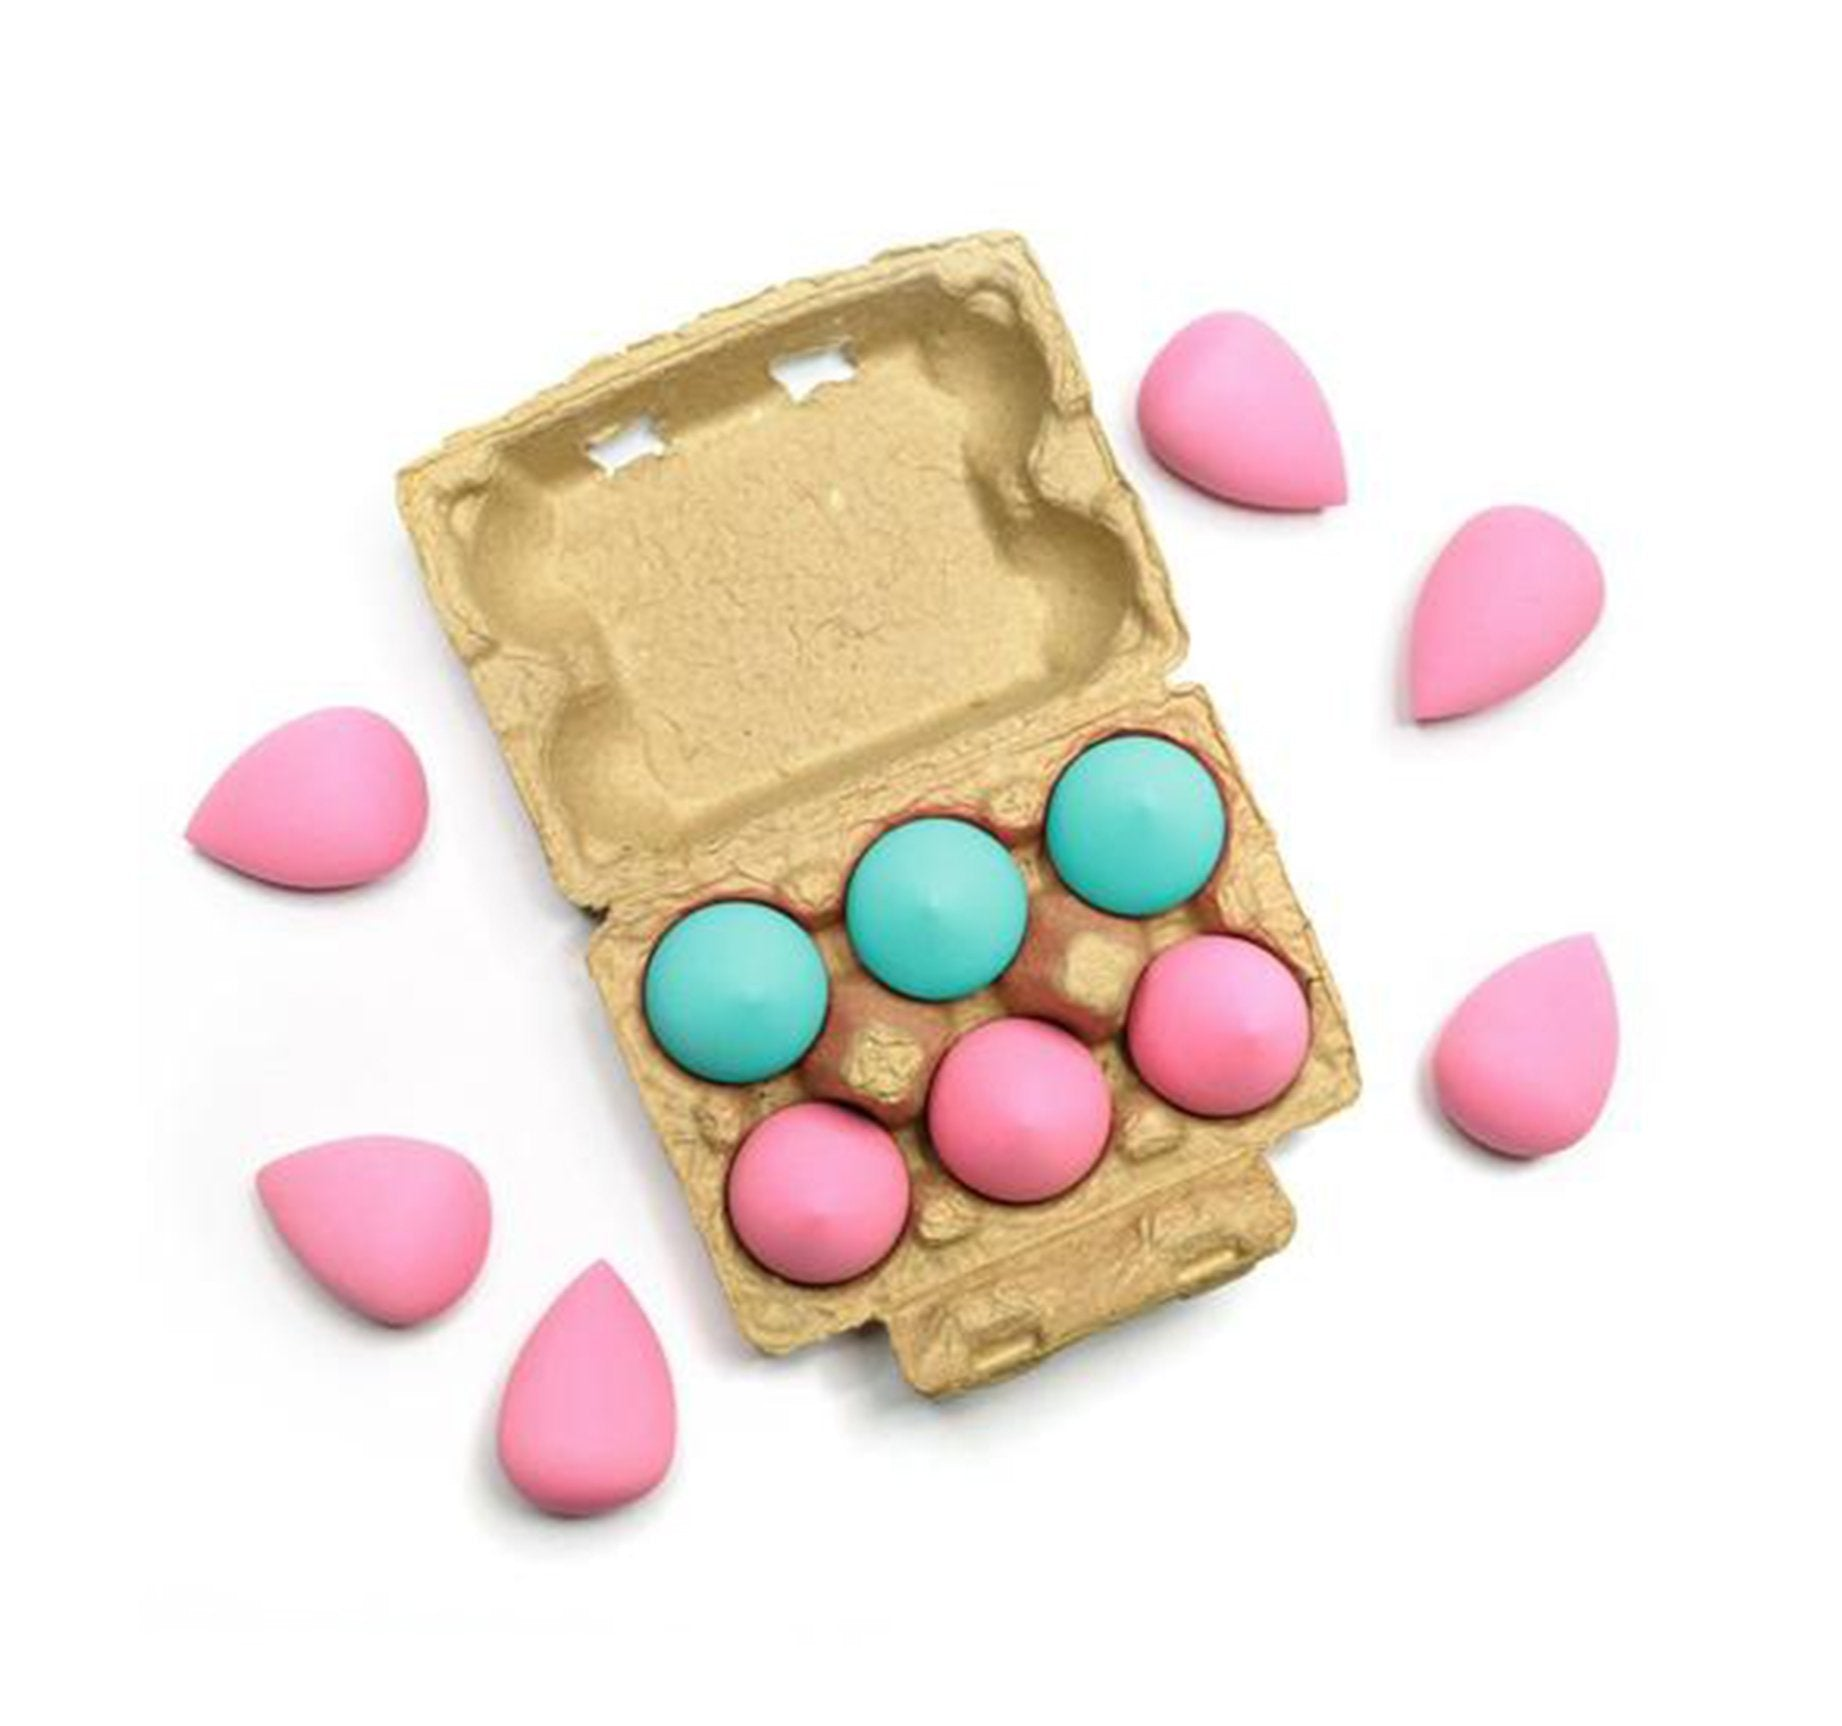 BLENDING EGGS BEAUTY SPONGE